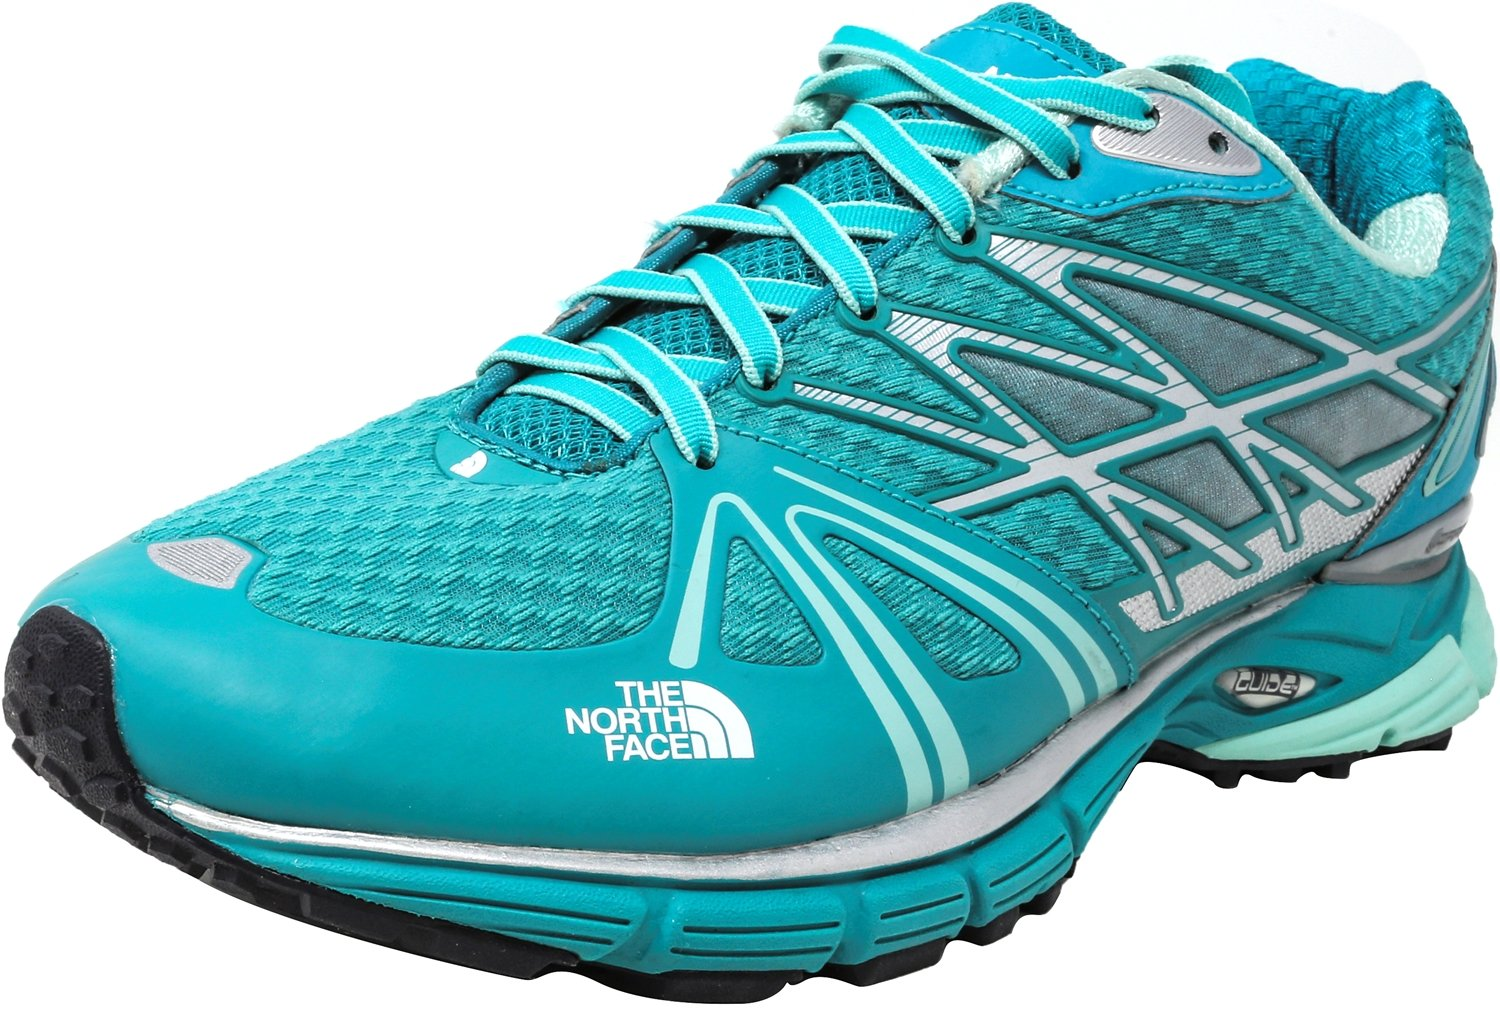 The North Face Women's Ultra Equity Jaiden Green/Beach Glass Ankle-High Running Shoe - 10.5M